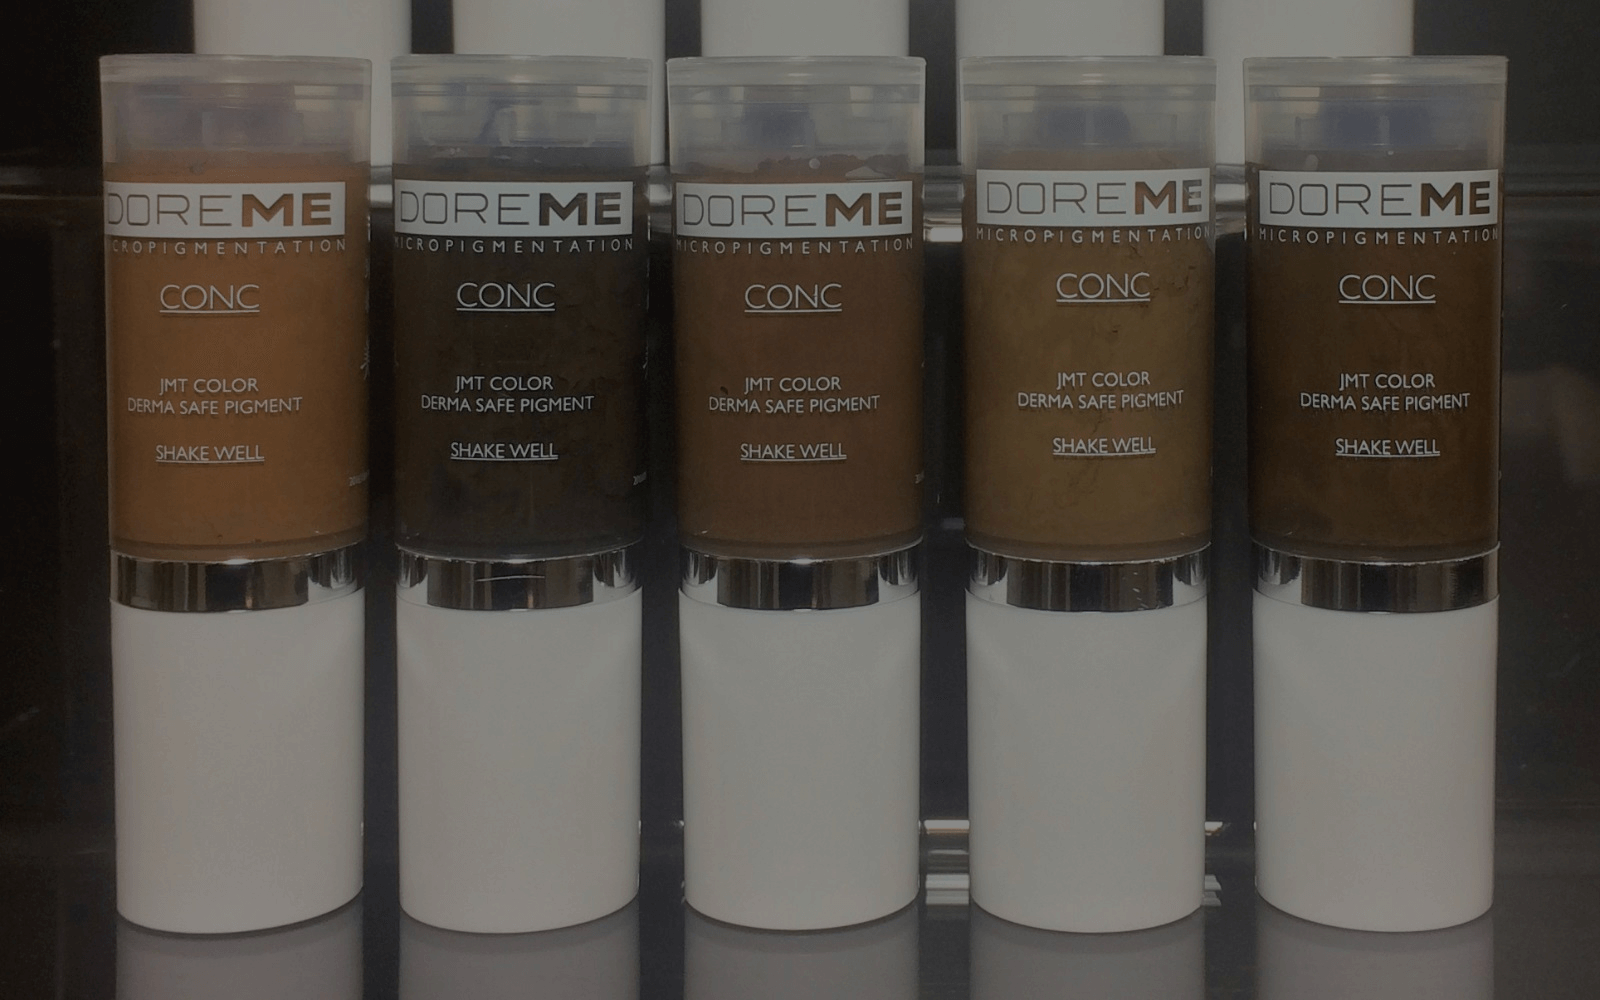 Doreme Permanent Makeup Microblading Pigments UK Distributor Supplier Wholesale